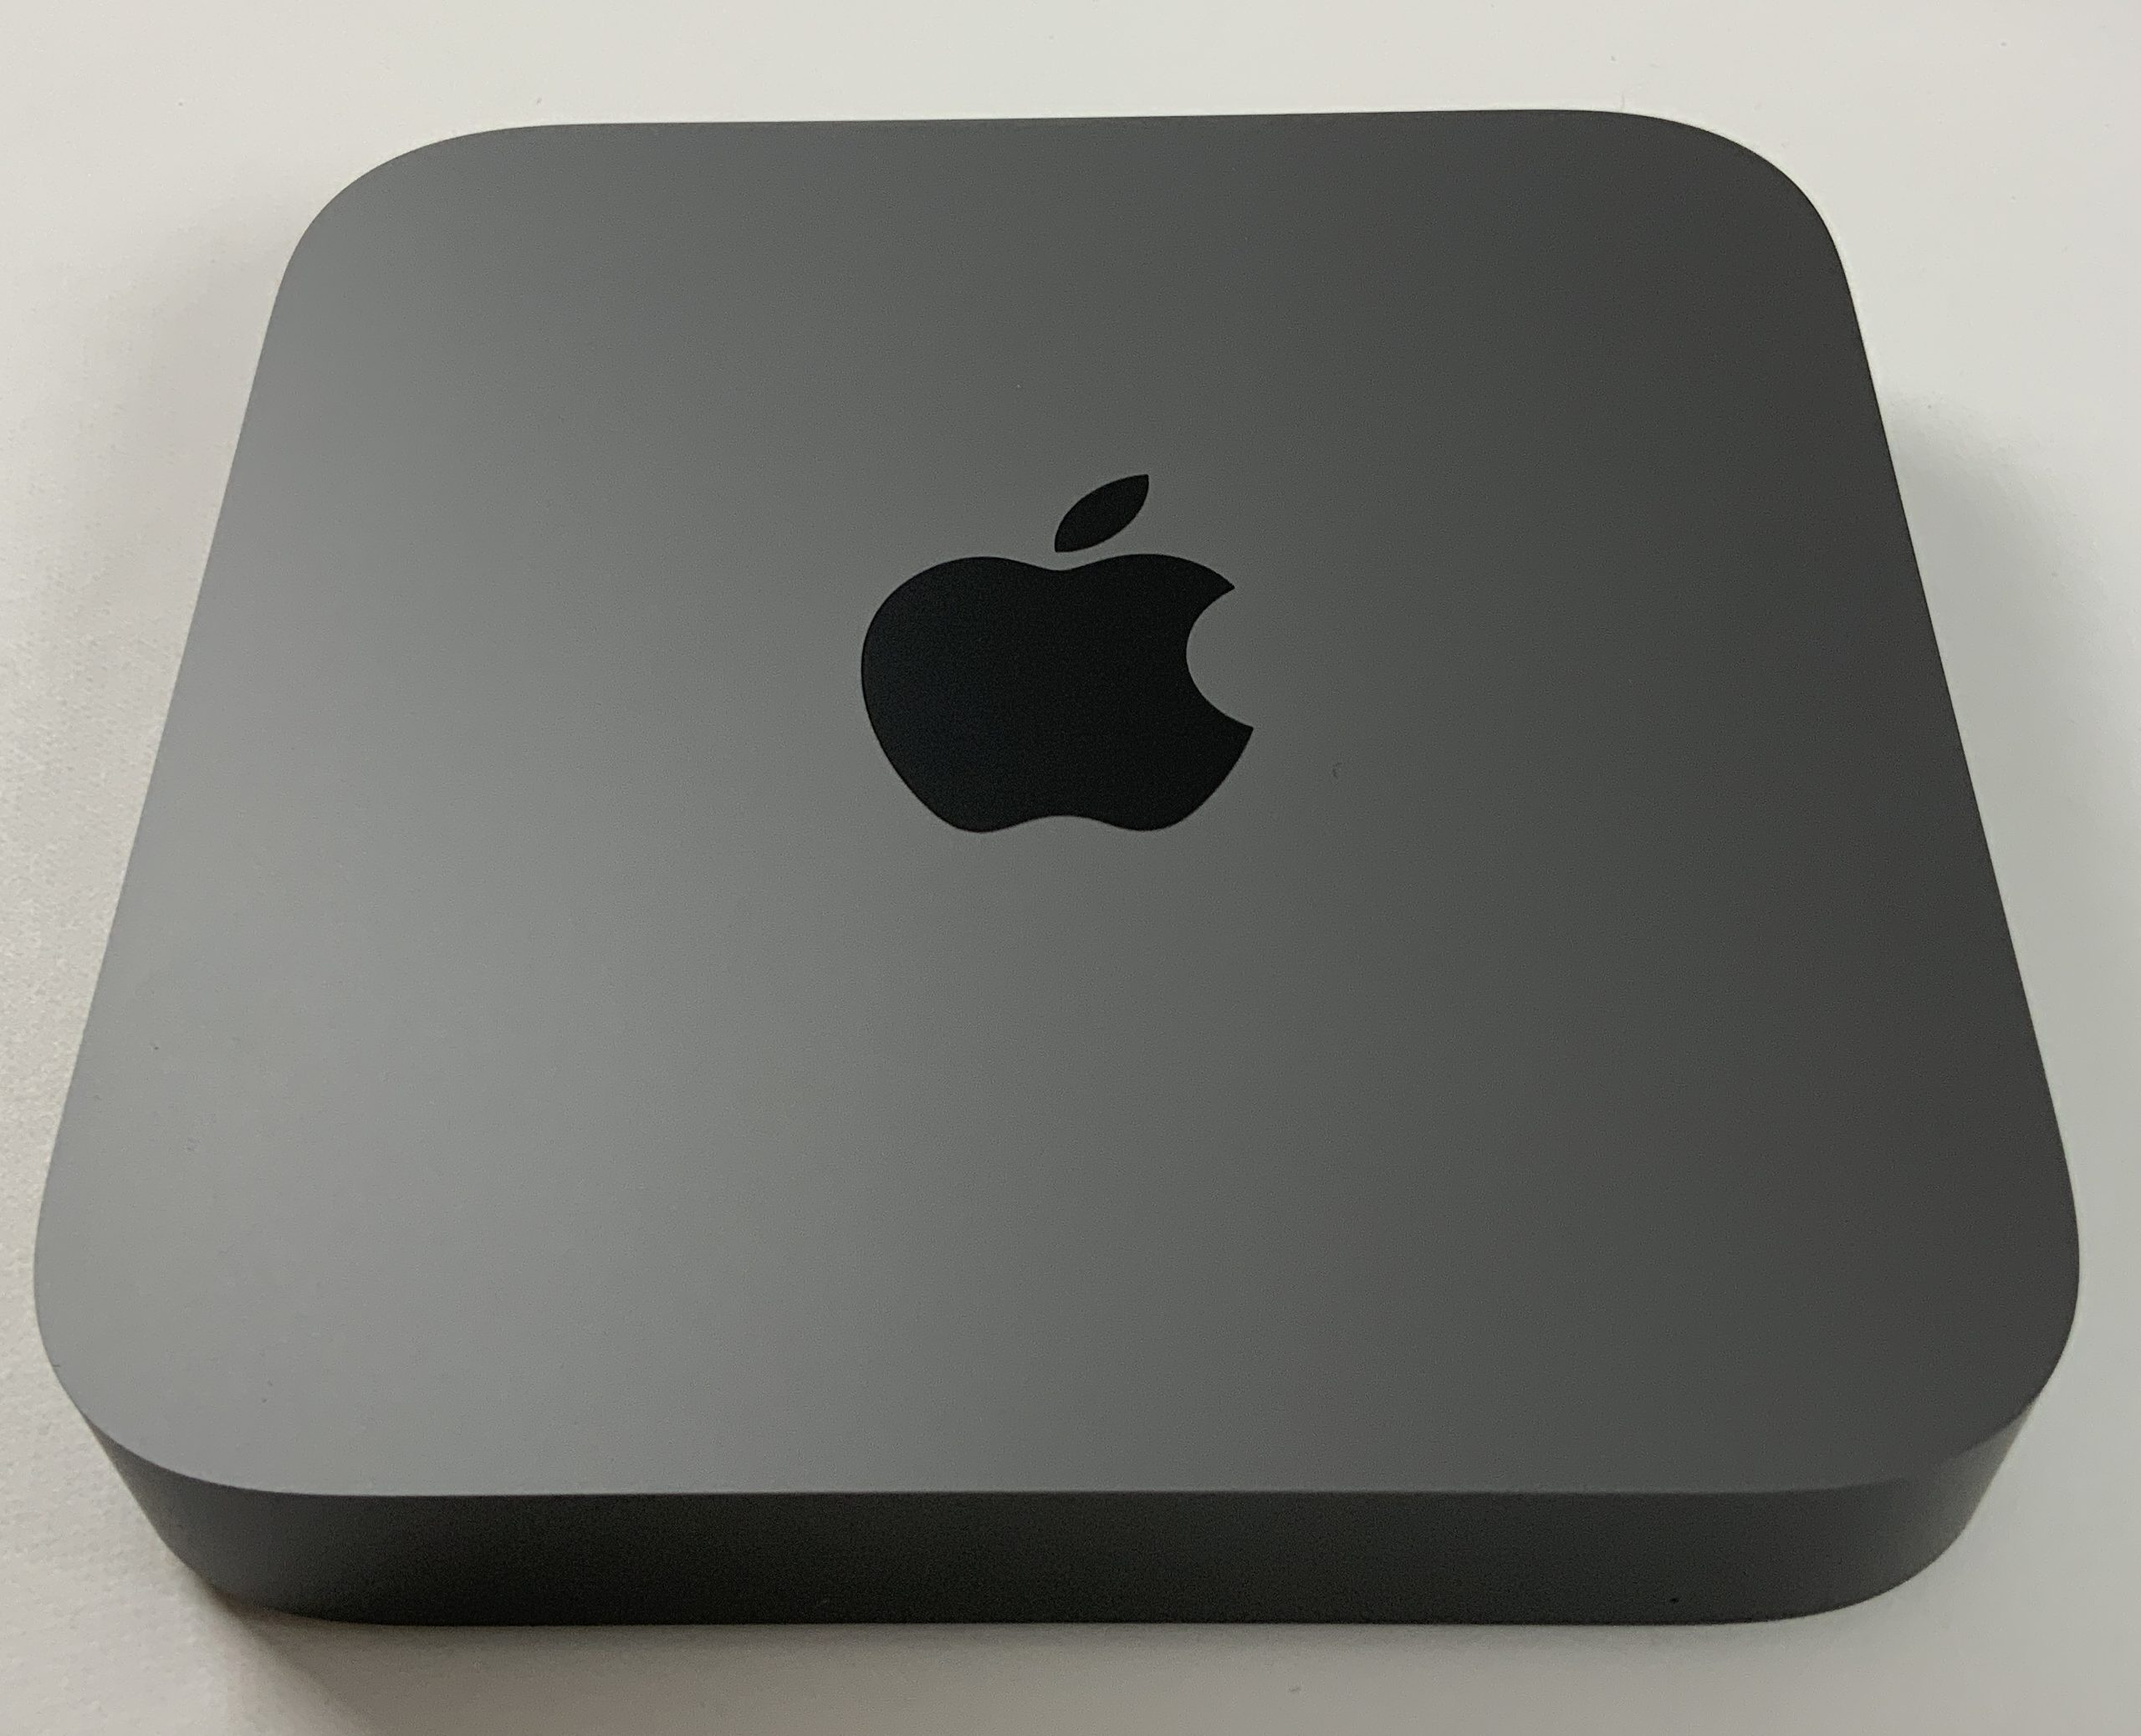 Mac Mini Late 2018 (Intel 6-Core i5 3.0 GHz 8 GB RAM 256 GB SSD), Intel 6-Core i5 3.0 GHz, 8 GB RAM, 256 GB SSD, immagine 1